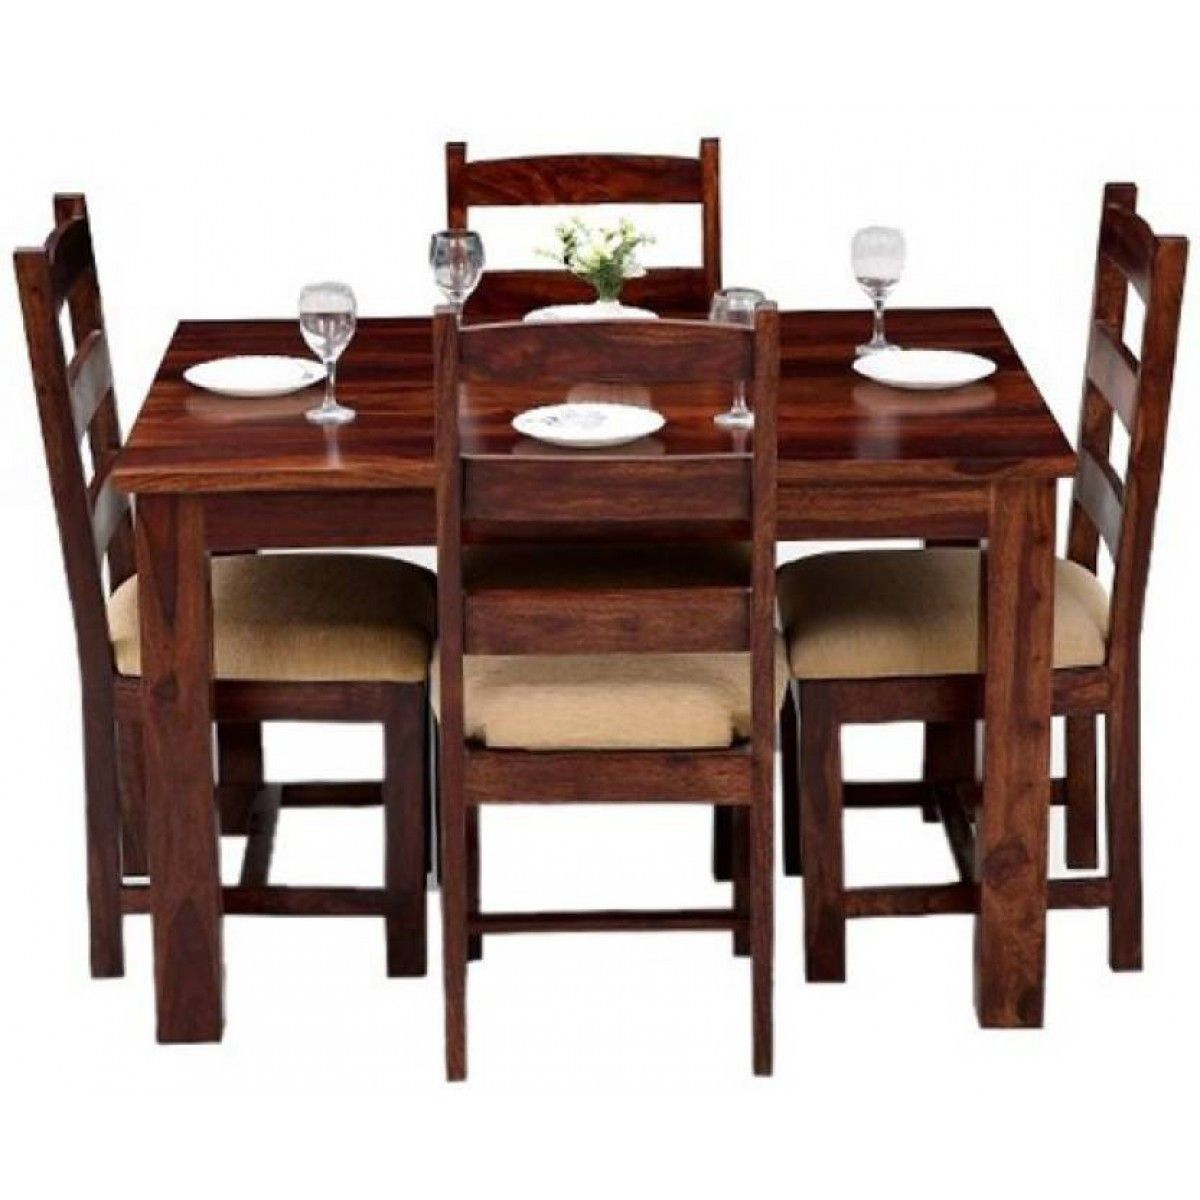 Gorevizon Rose Wooden 4 Seater Dining Table Set 4 Seater Dining Table Four Seater Dining Table Solid Wood Dining Room Set